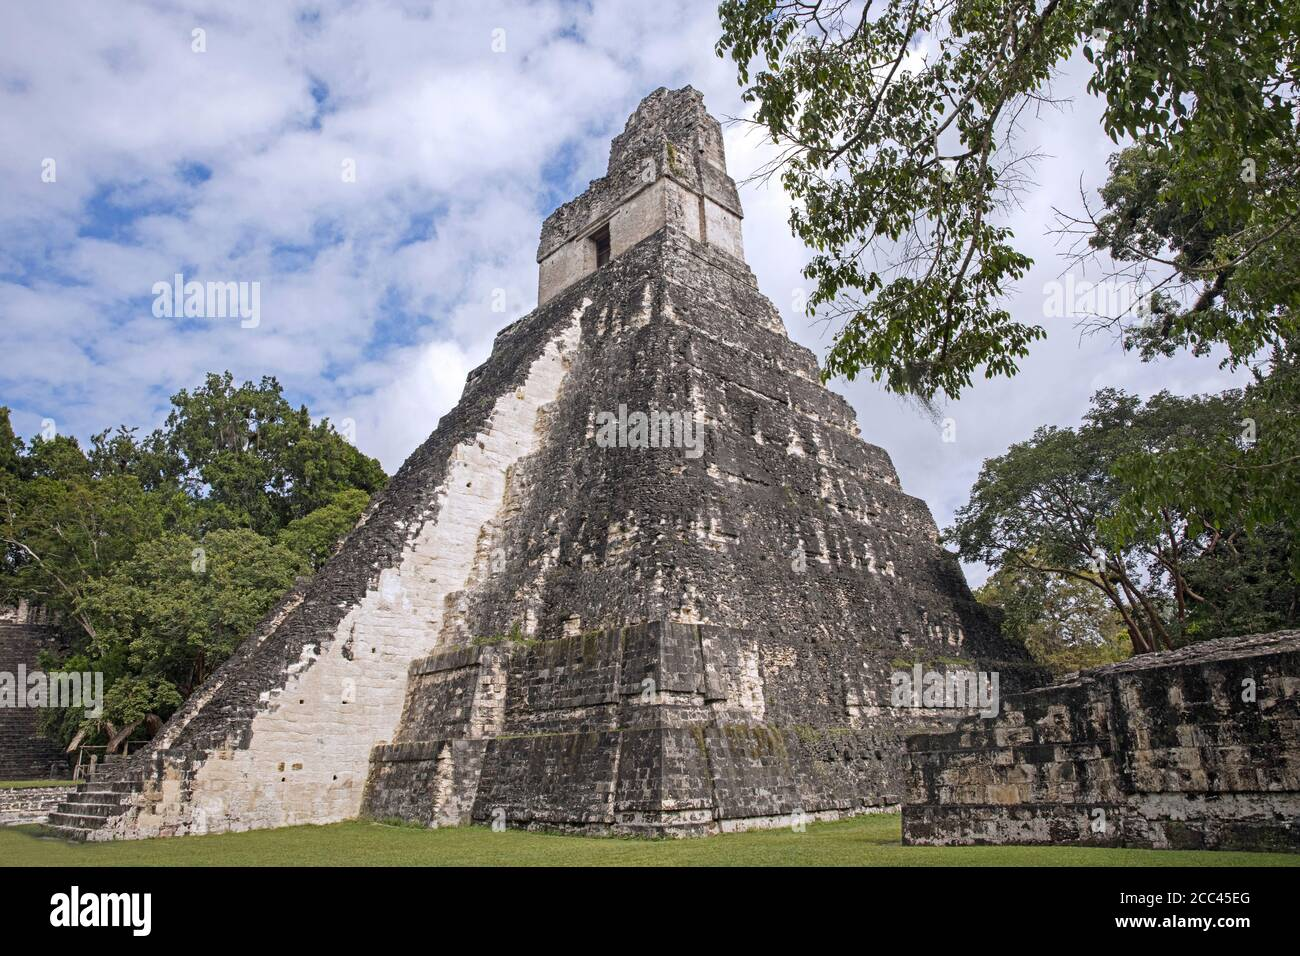 Temple pyramid at Tikal / Yax Mutal, ancient Maya city near the town Flores, Petén Department, Guatemala, Central America Stock Photo